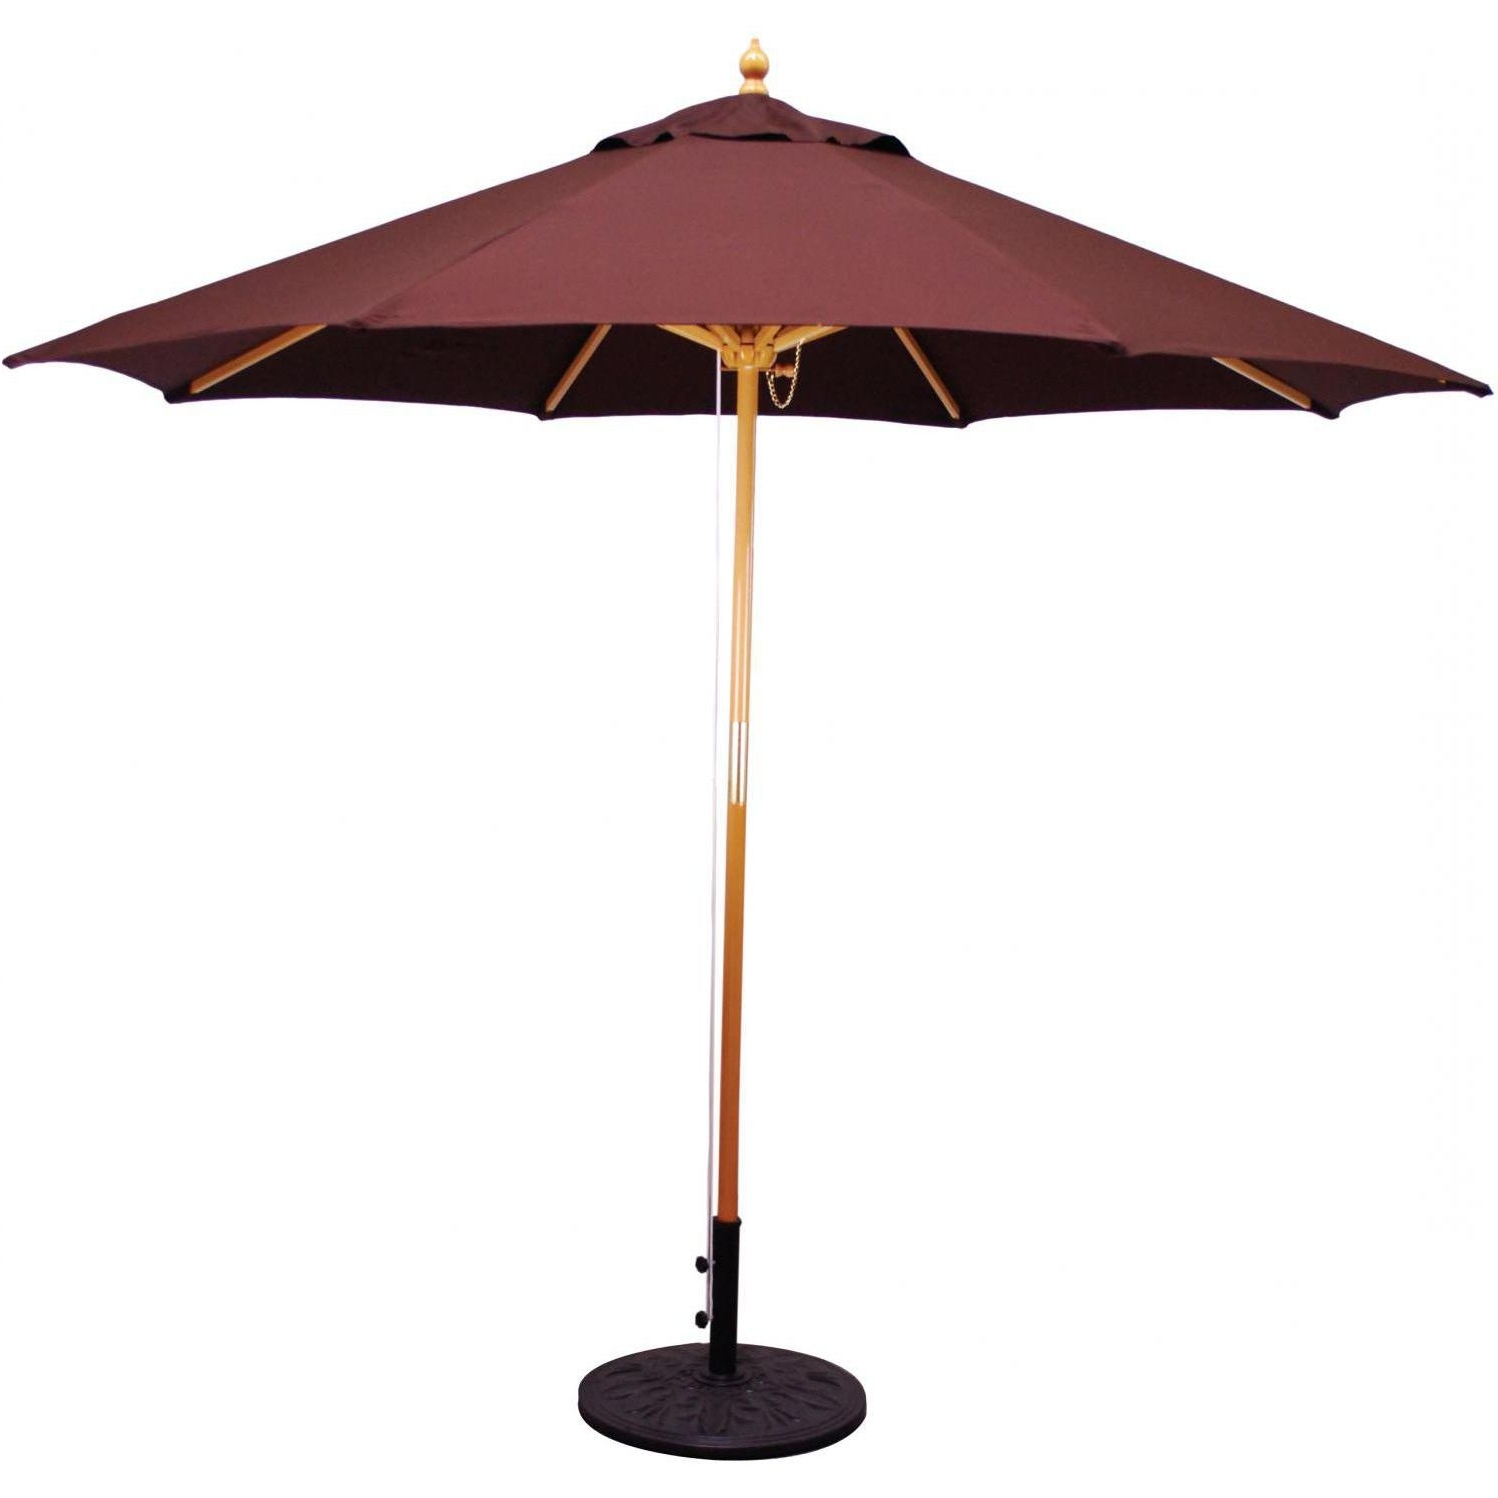 Galtech 9 Ft Wood Patio Fascinating Wooden Patio Umbrellas – Home With Popular Wooden Patio Umbrellas (View 9 of 20)